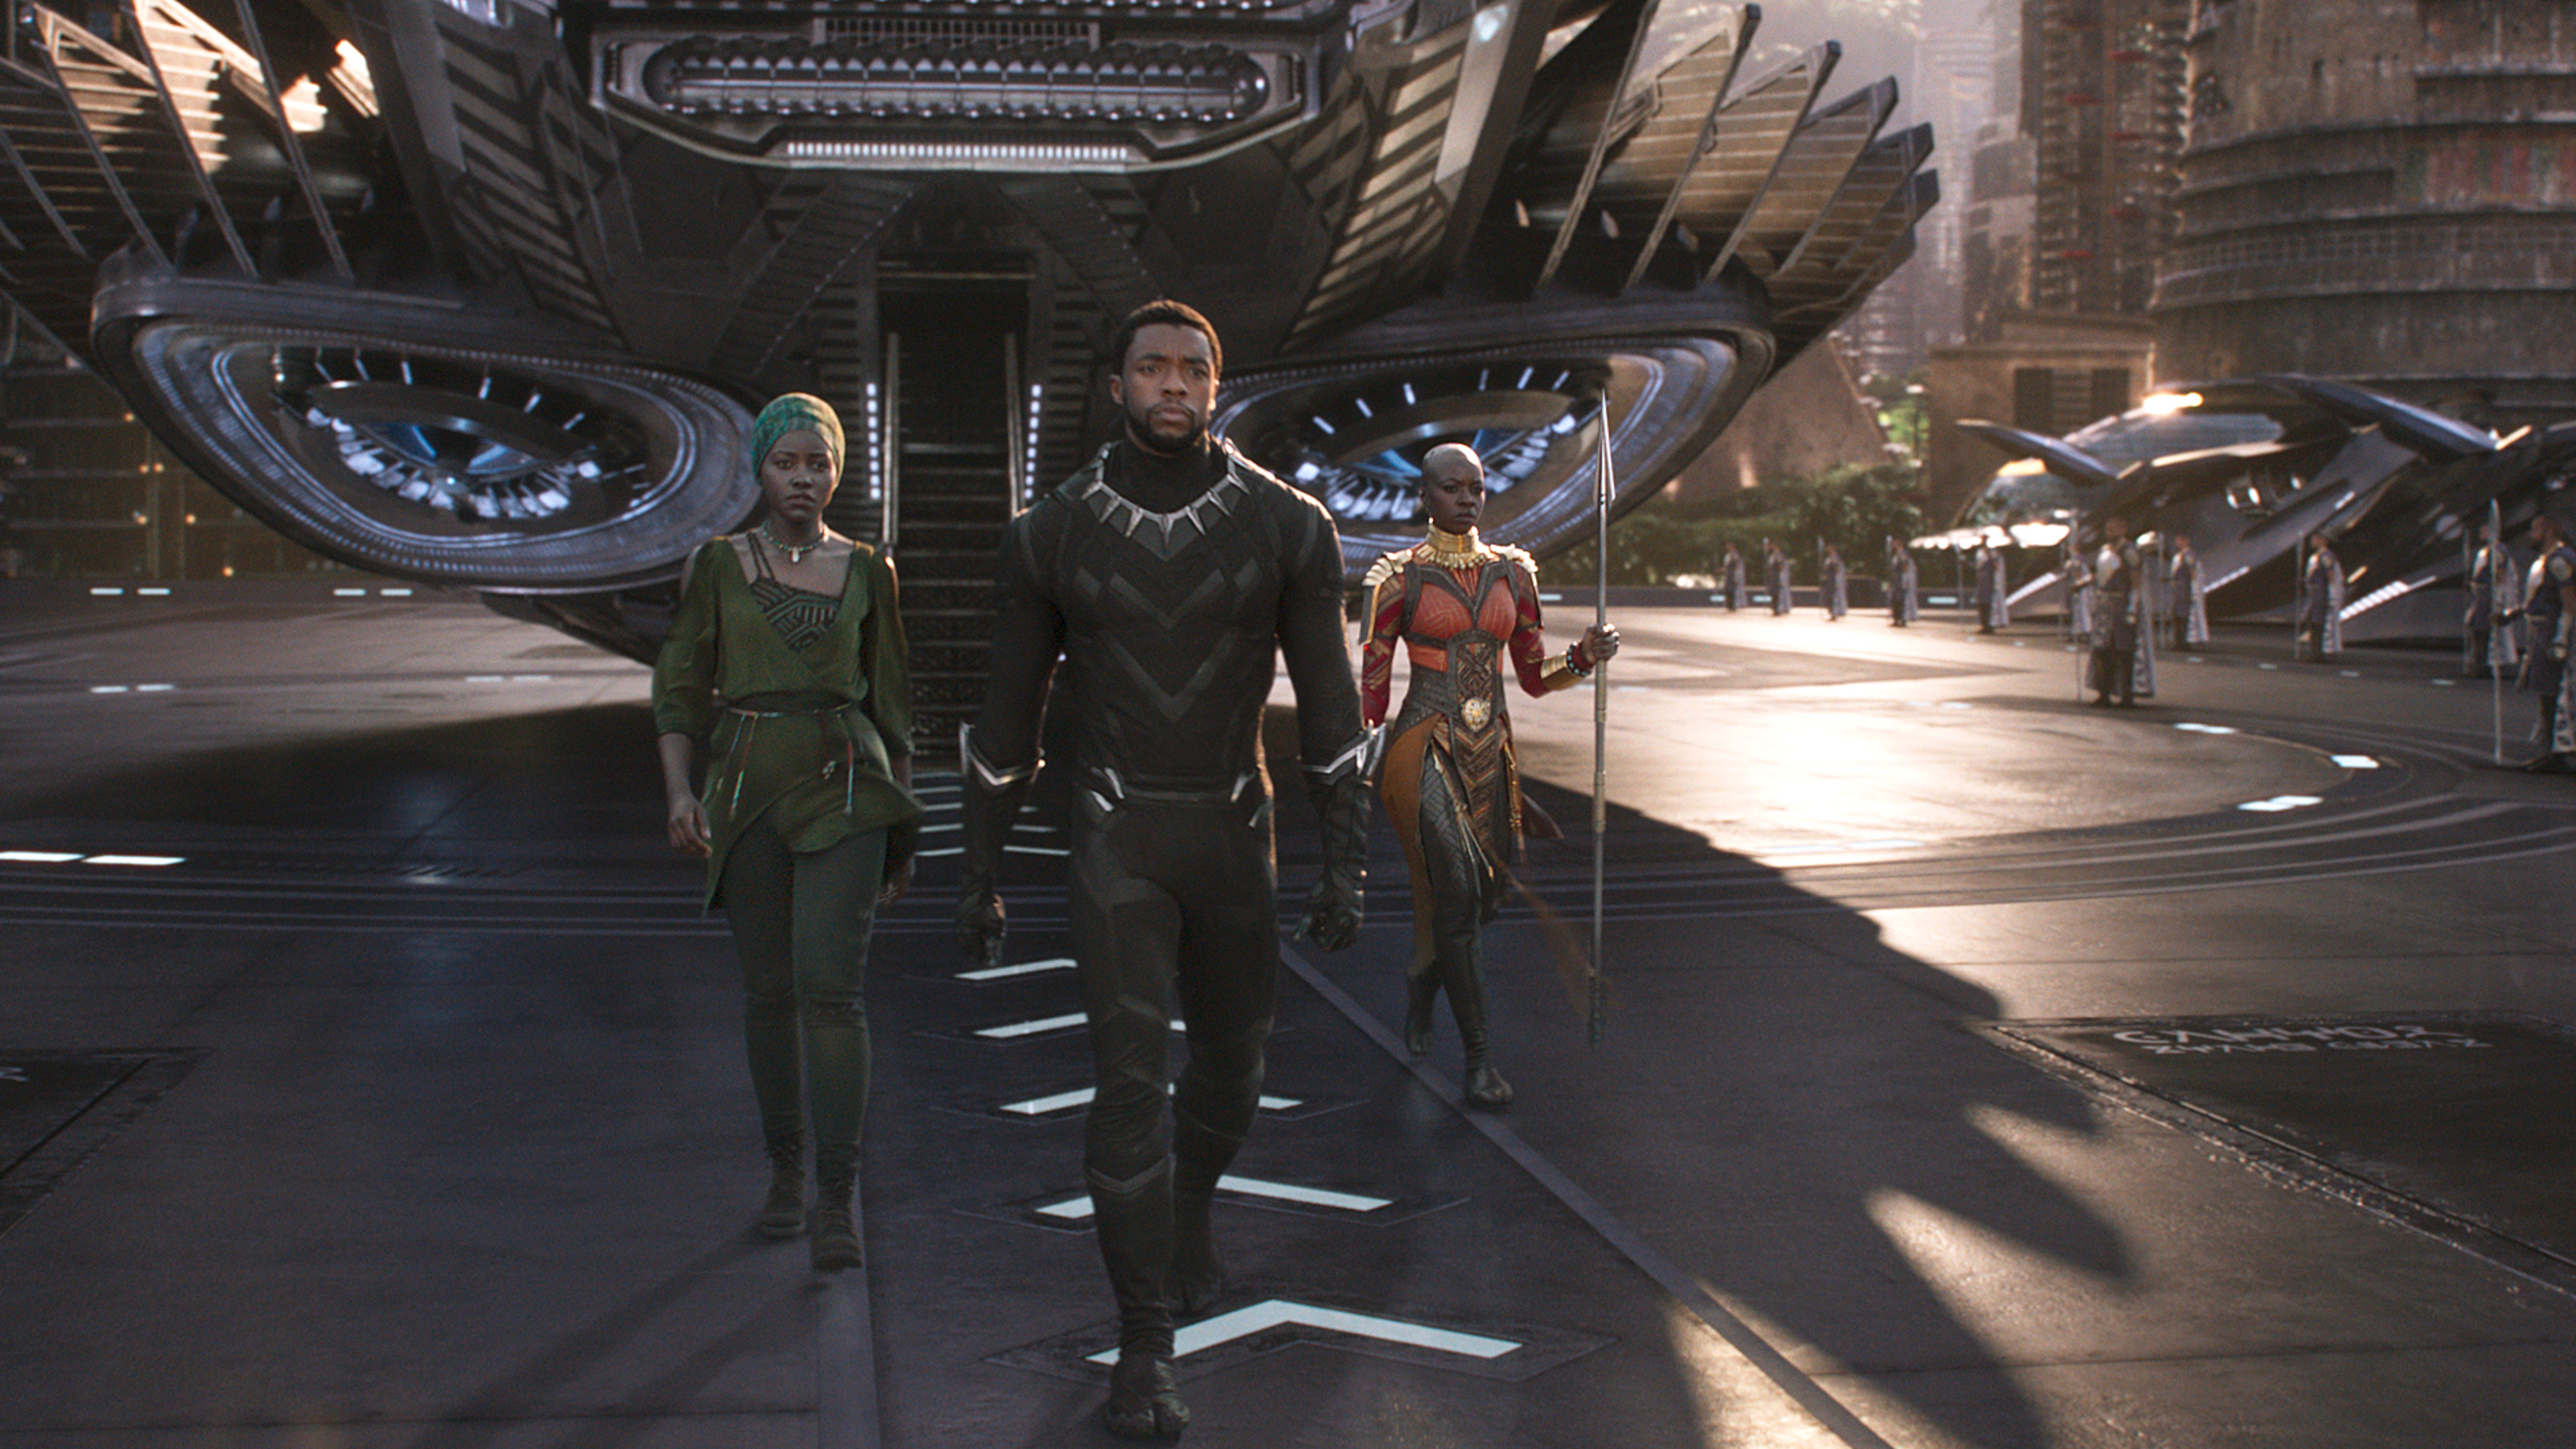 black-panther-movie-2018-fg.jpg